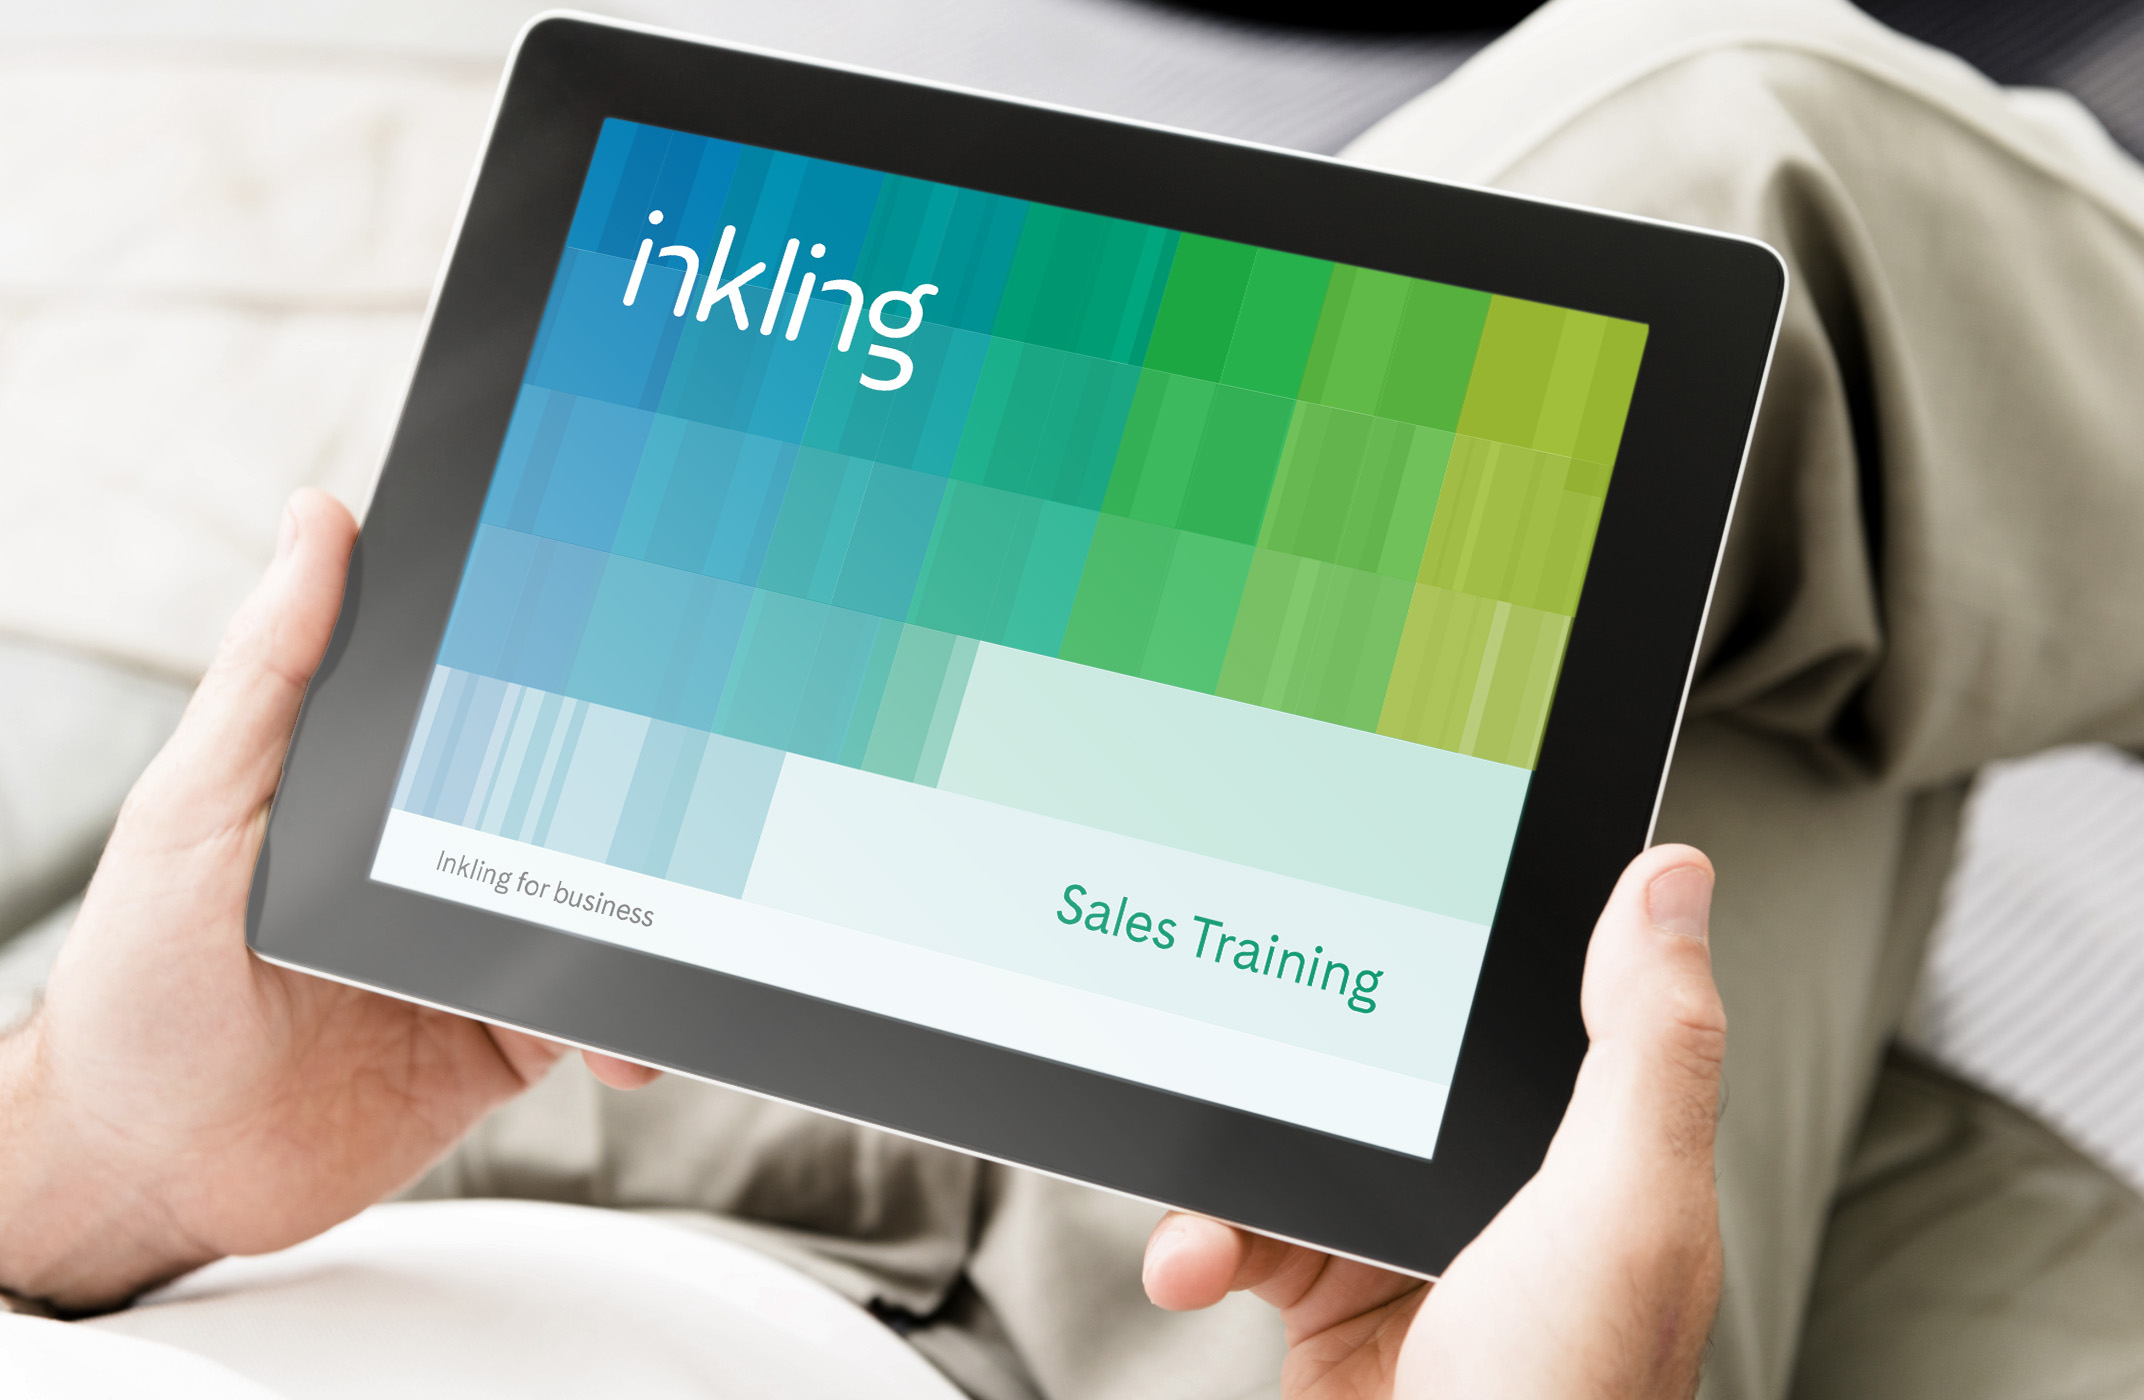 inkling_sales_training_mob